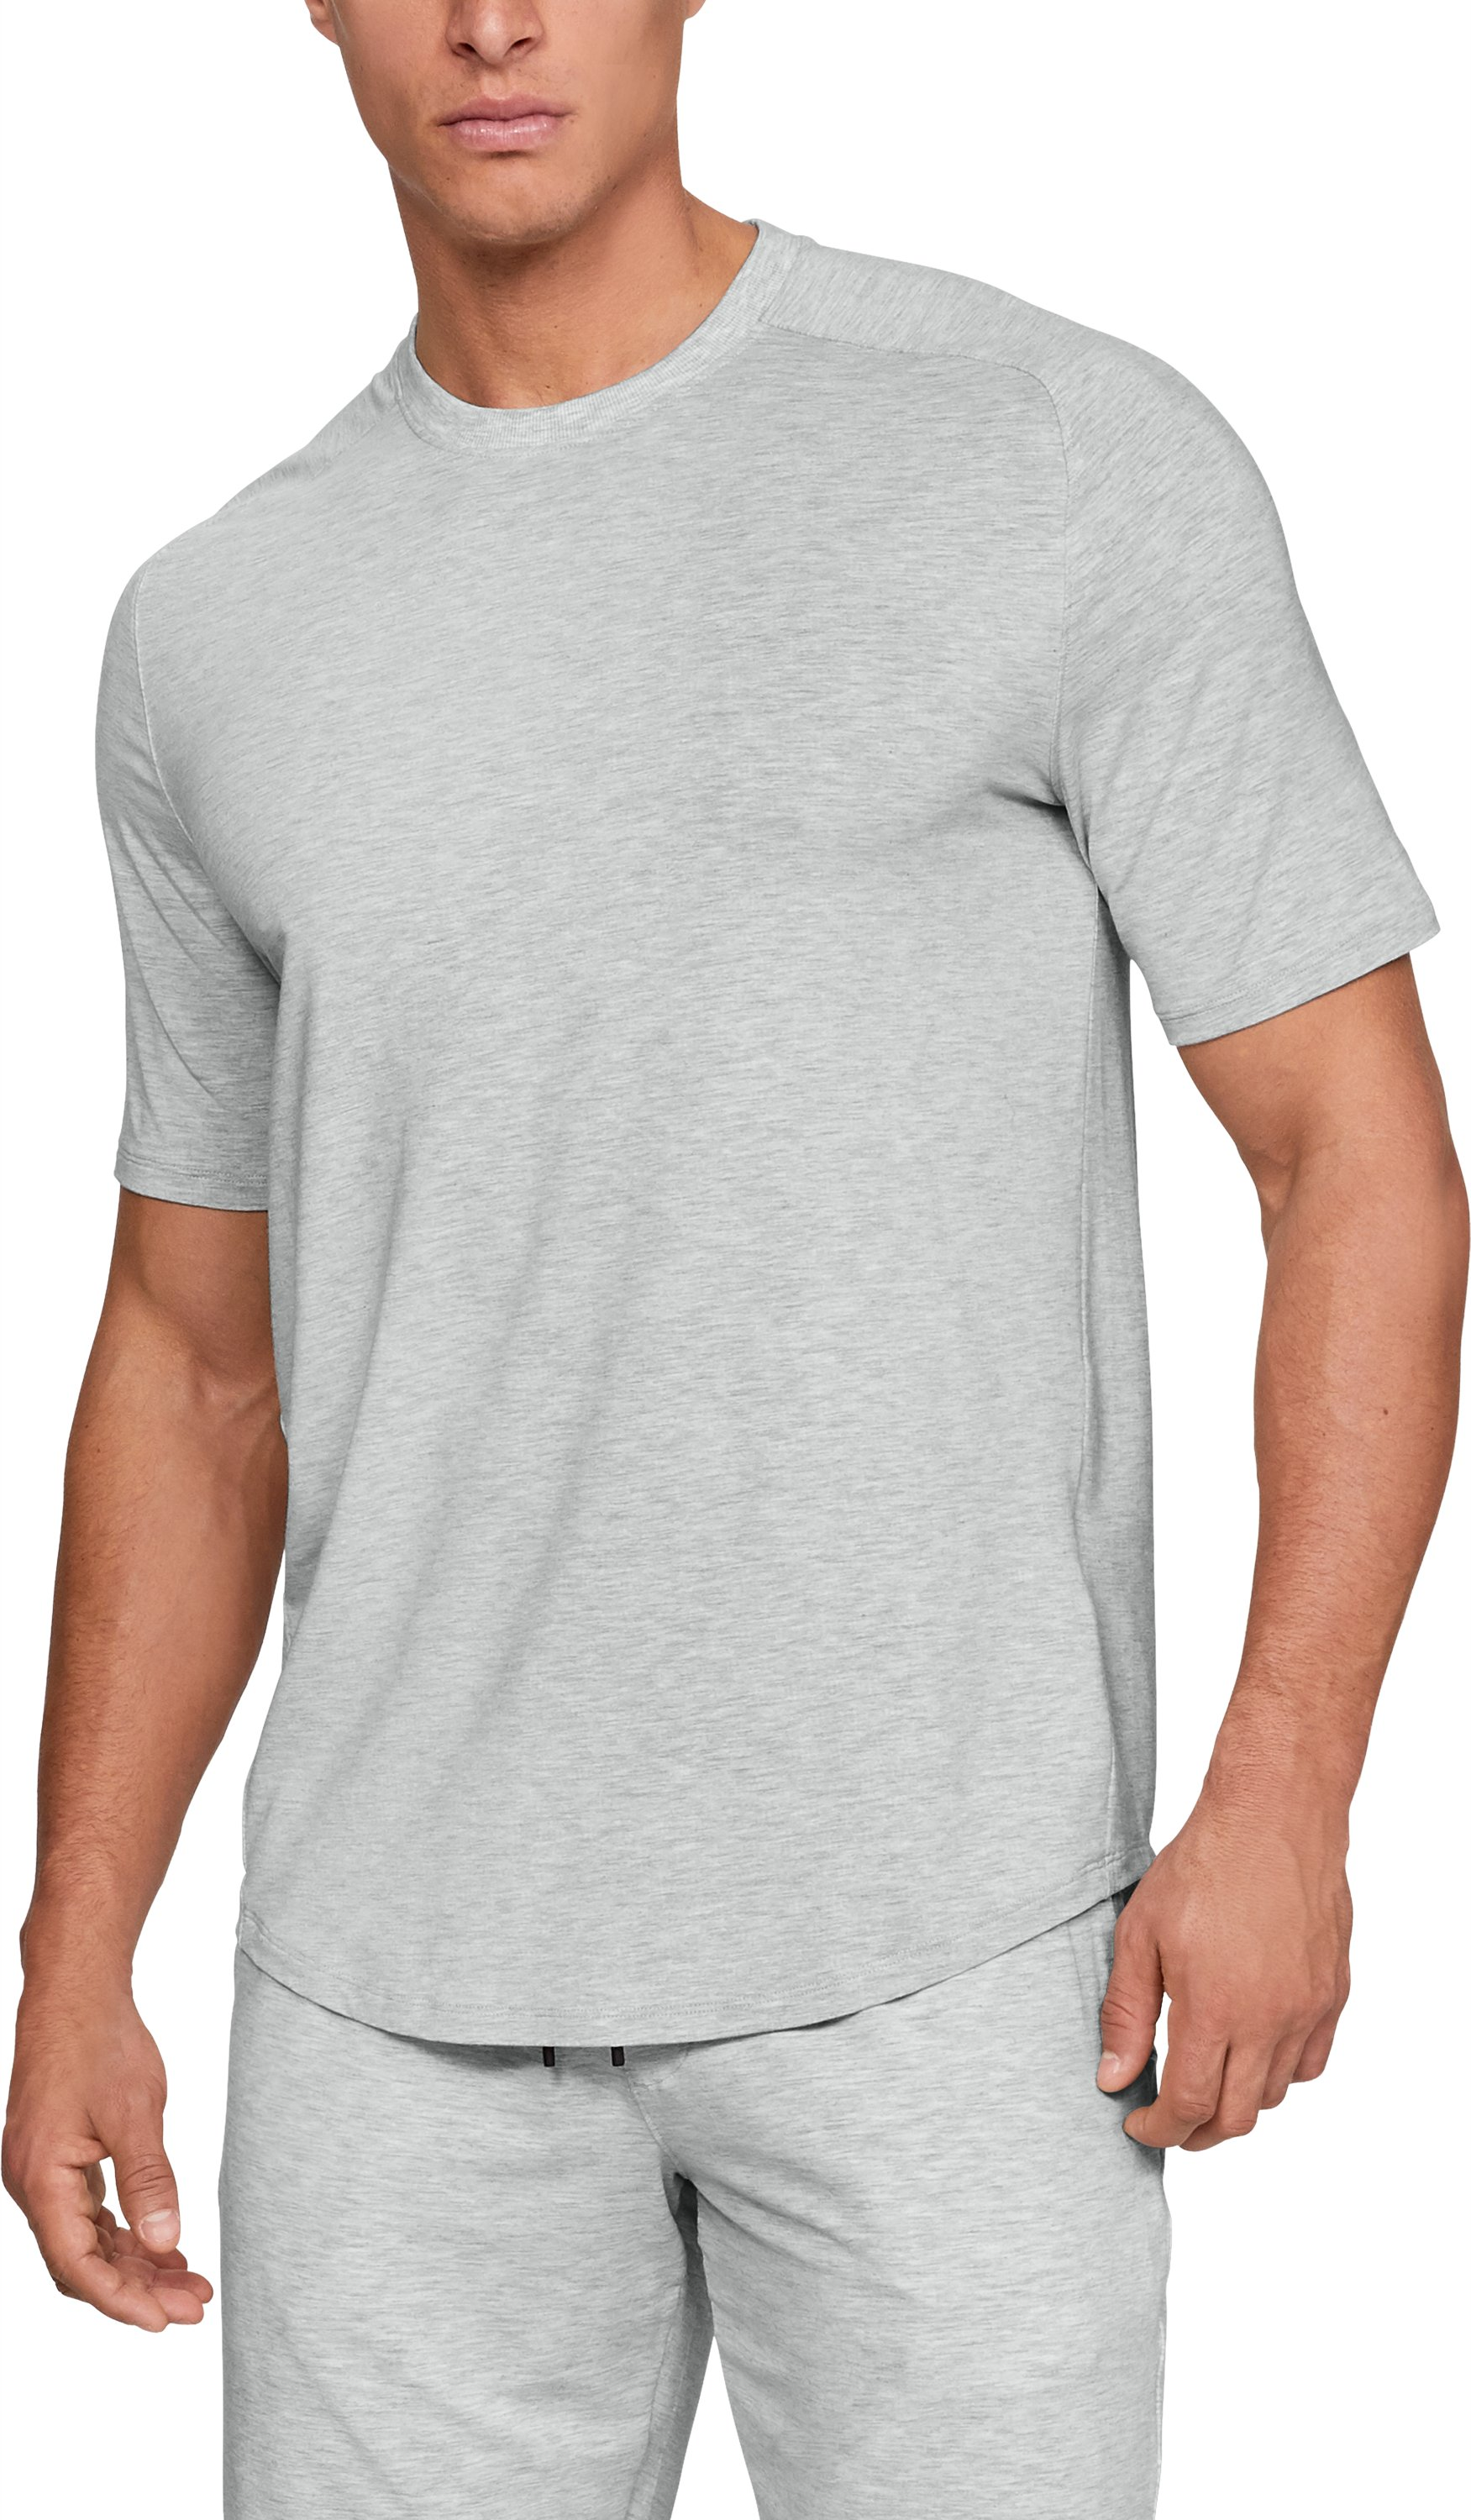 Men's Athlete Recovery Sleepwear™ Ultra Comfort Short Sleeve, Elemental Medium Heather, zoomed